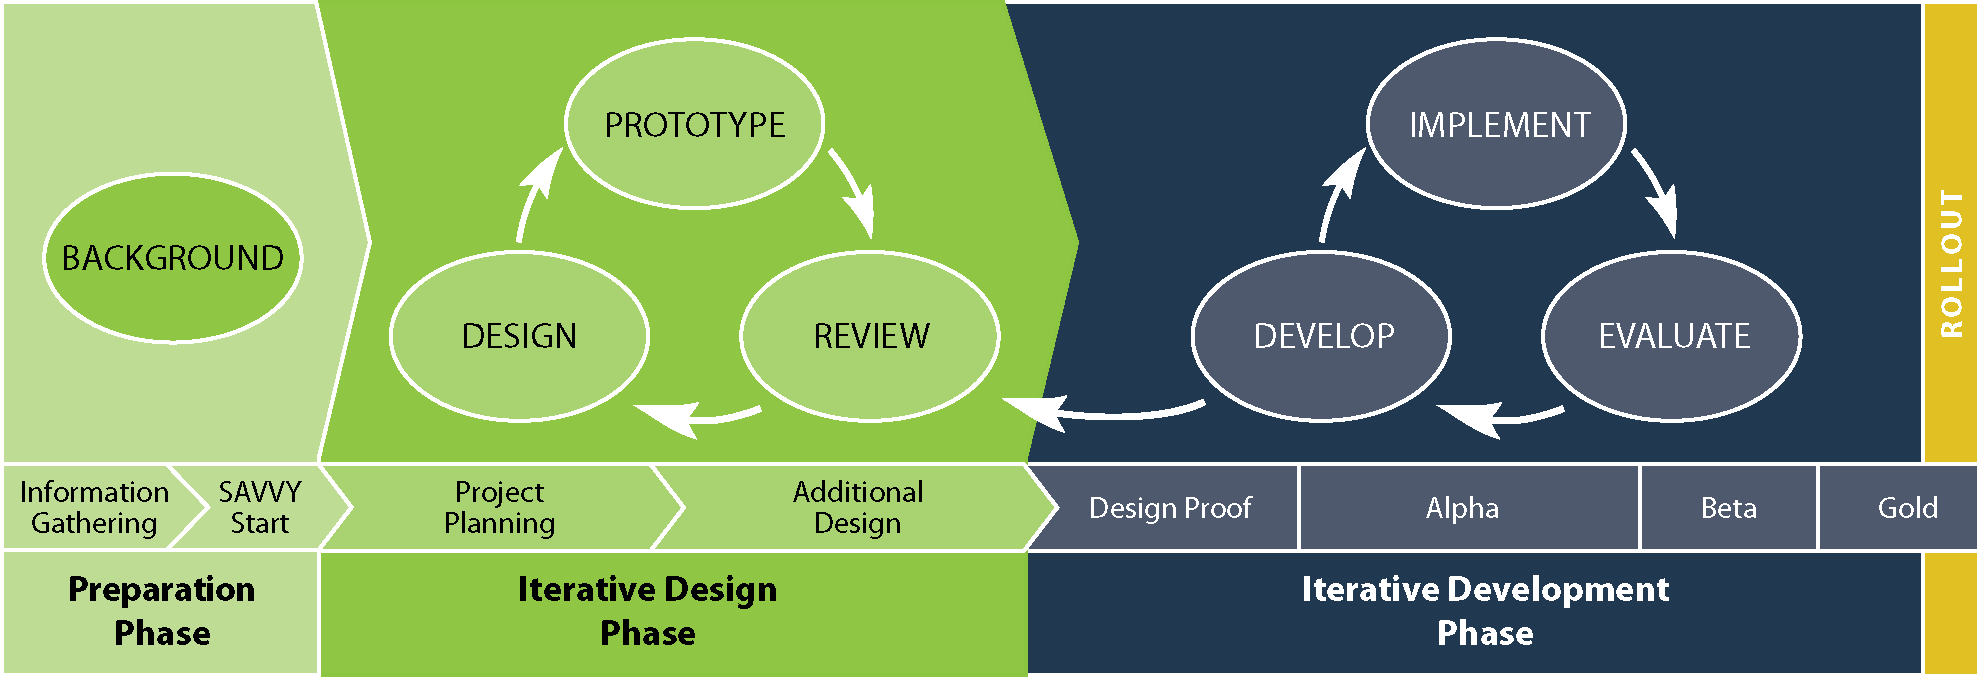 The Basics Of Instructional Design Processes By Zipboard Zipboard